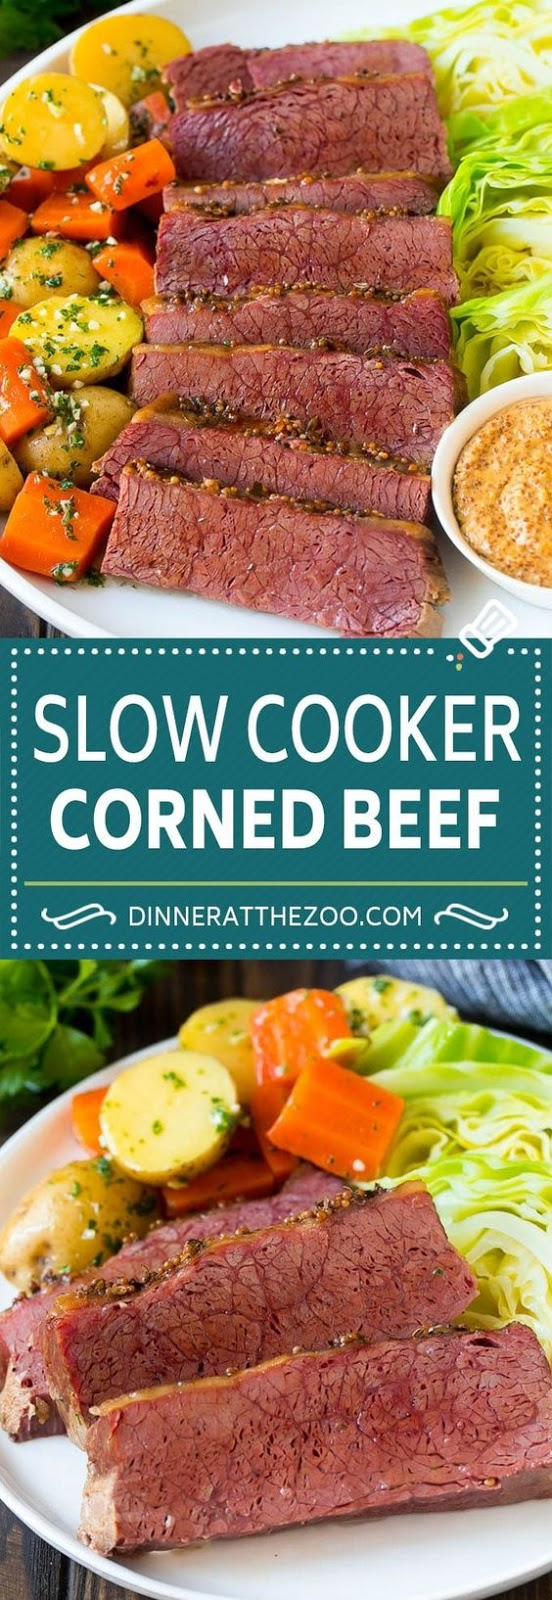 Slow Cooker Corned Beef and Gabbage